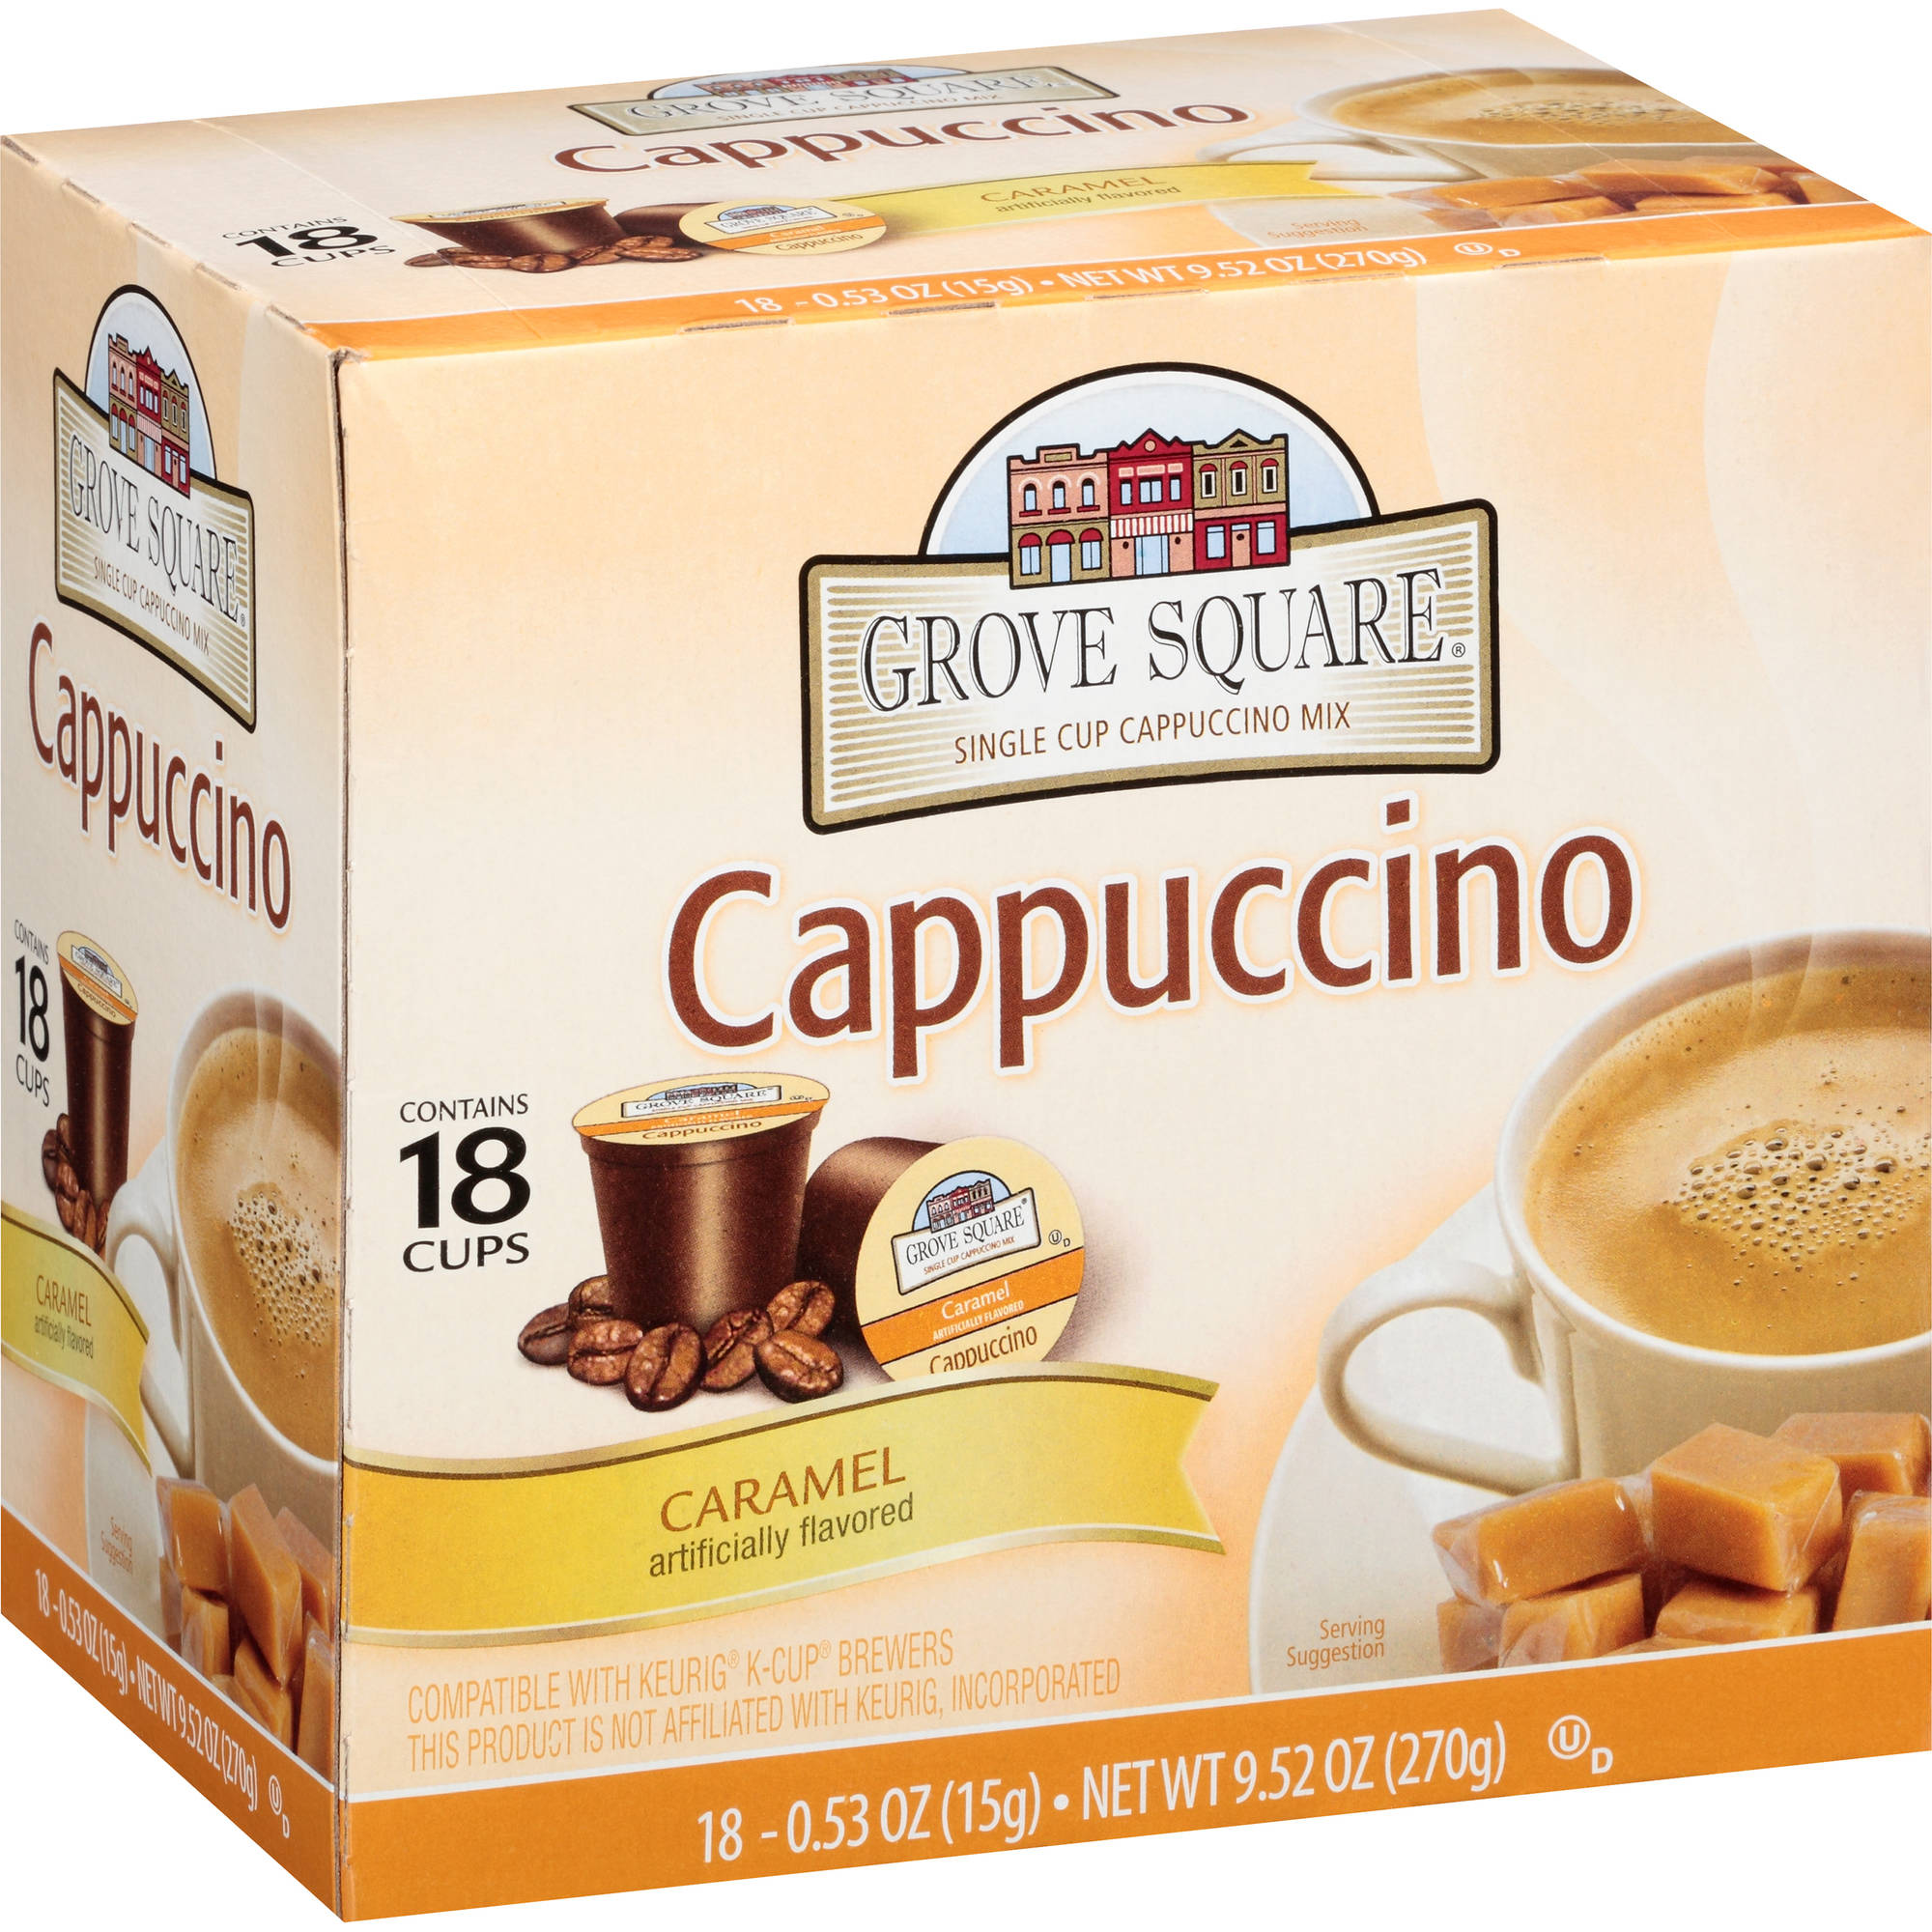 Grove Square Caramel Single Cup Cappuccino Mix, 18 count, 9.52 oz